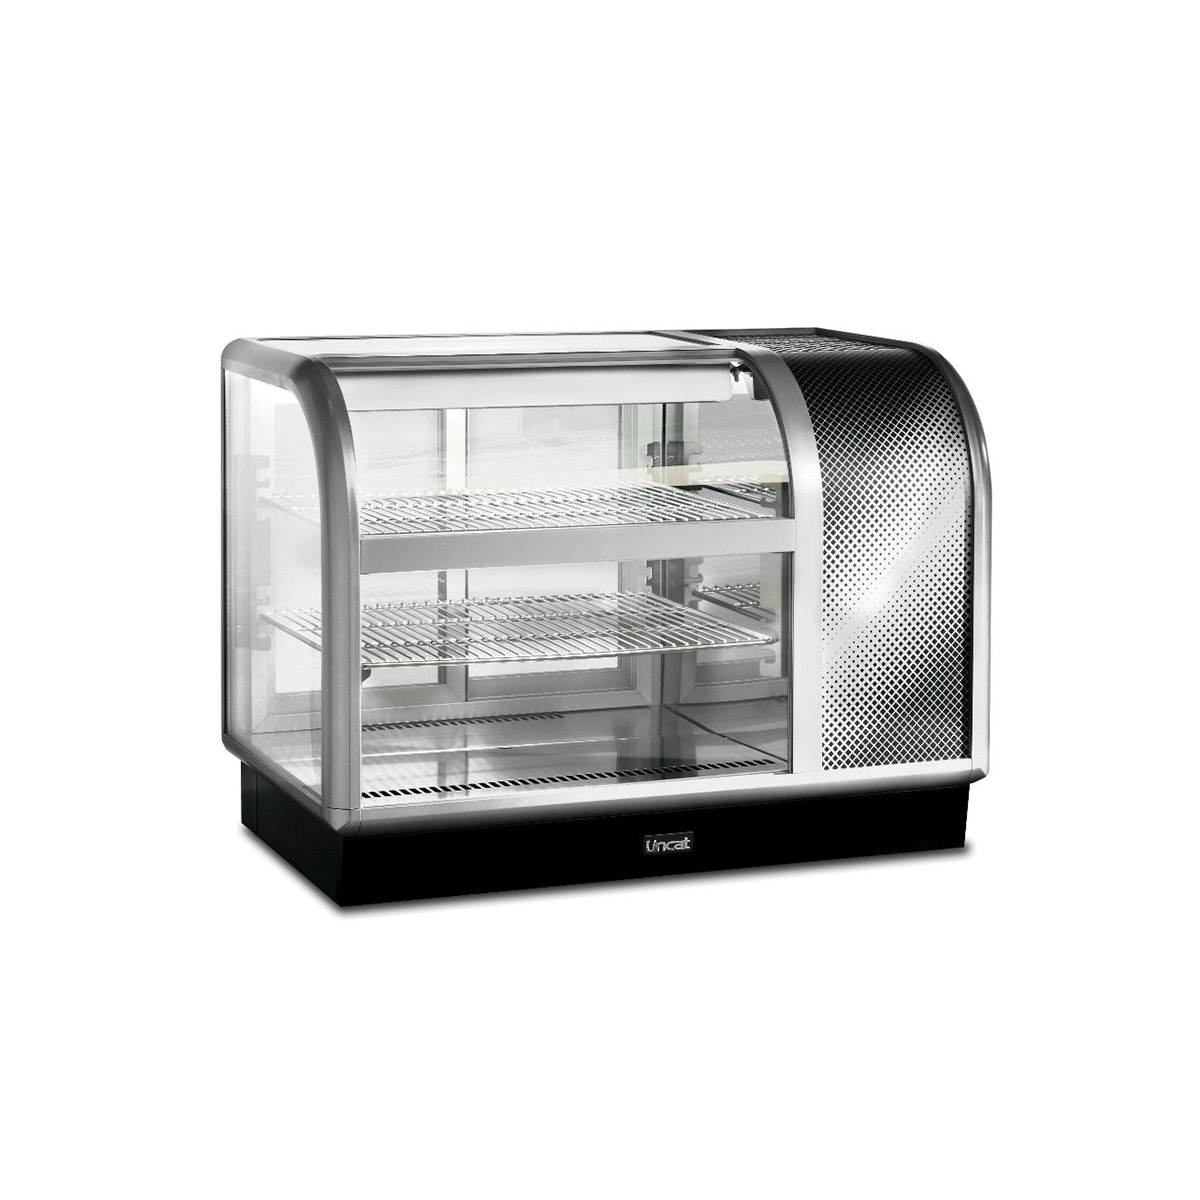 C6R/105BR - Lincat Seal 650 Series Counter-top Curved Front Refrigerated Merchandiser - Back-Service - Side-Mounted Power Pack [Right] - W 1050 mm - 0.6 kW